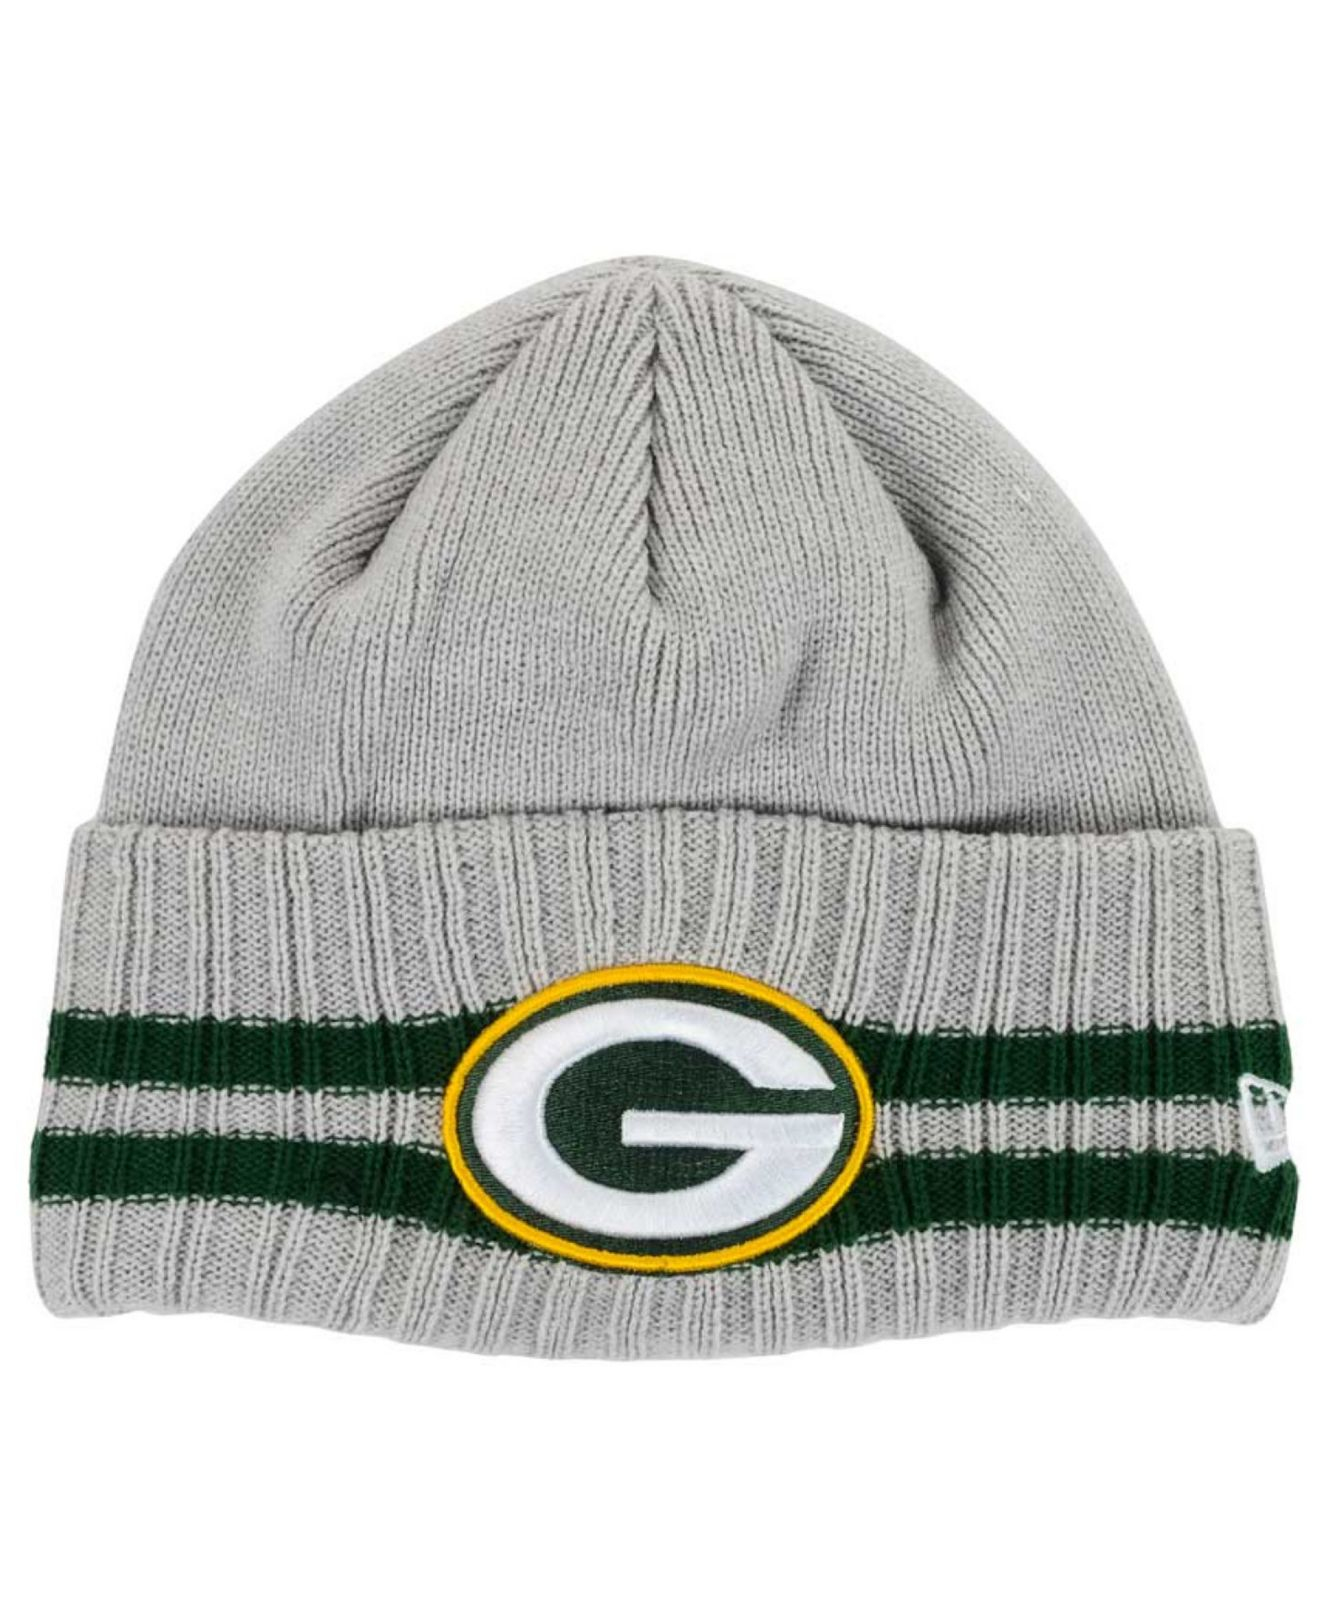 Lyst - KTZ Green Bay Packers Striped Cuff Knit Hat in Gray for Men 6759cf726973